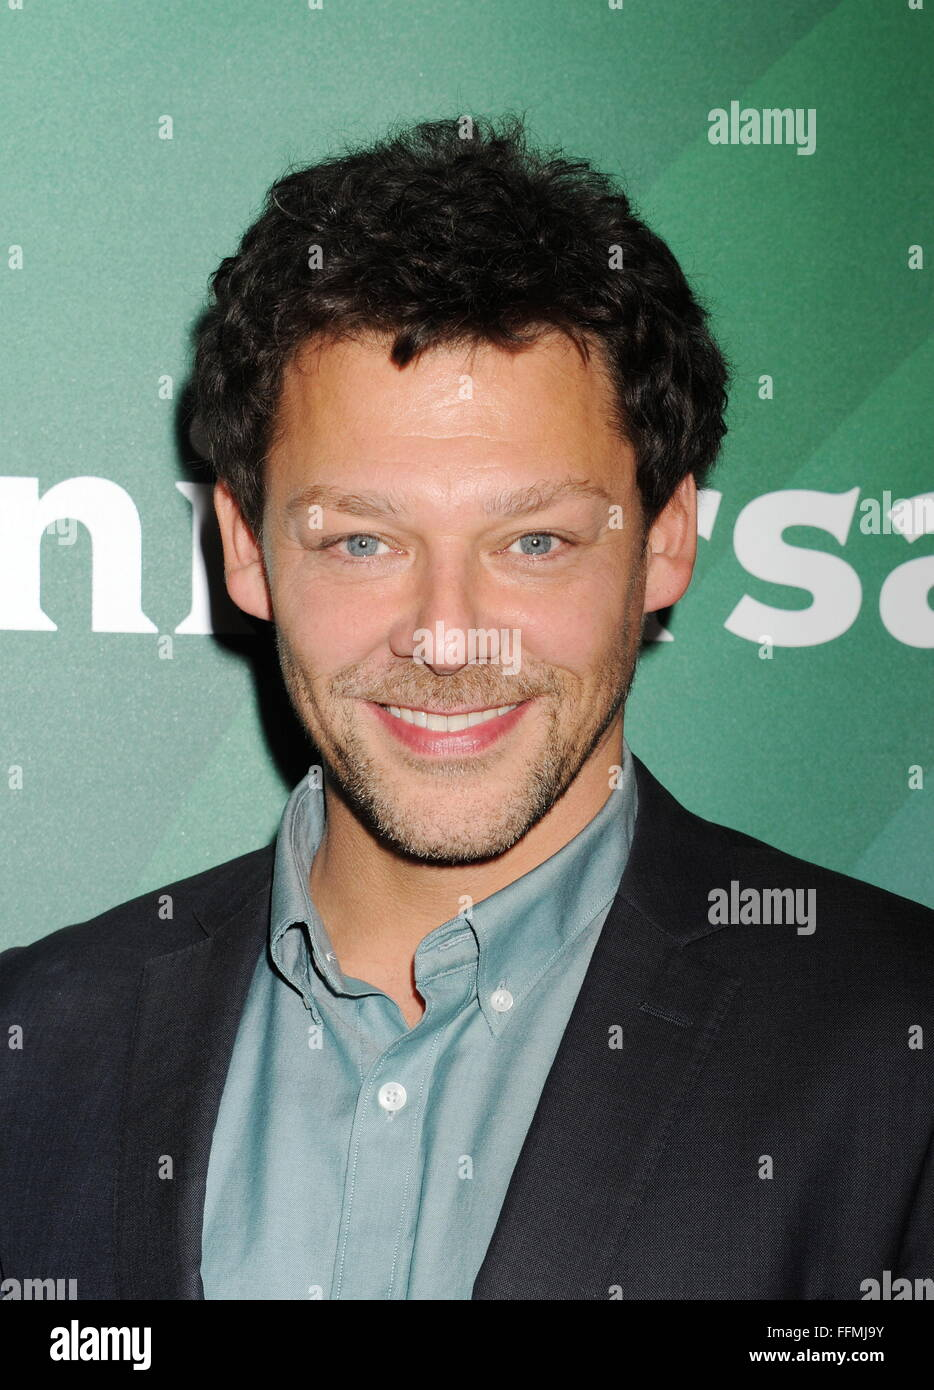 Richard Coyle (born 1972) Richard Coyle (born 1972) new pictures